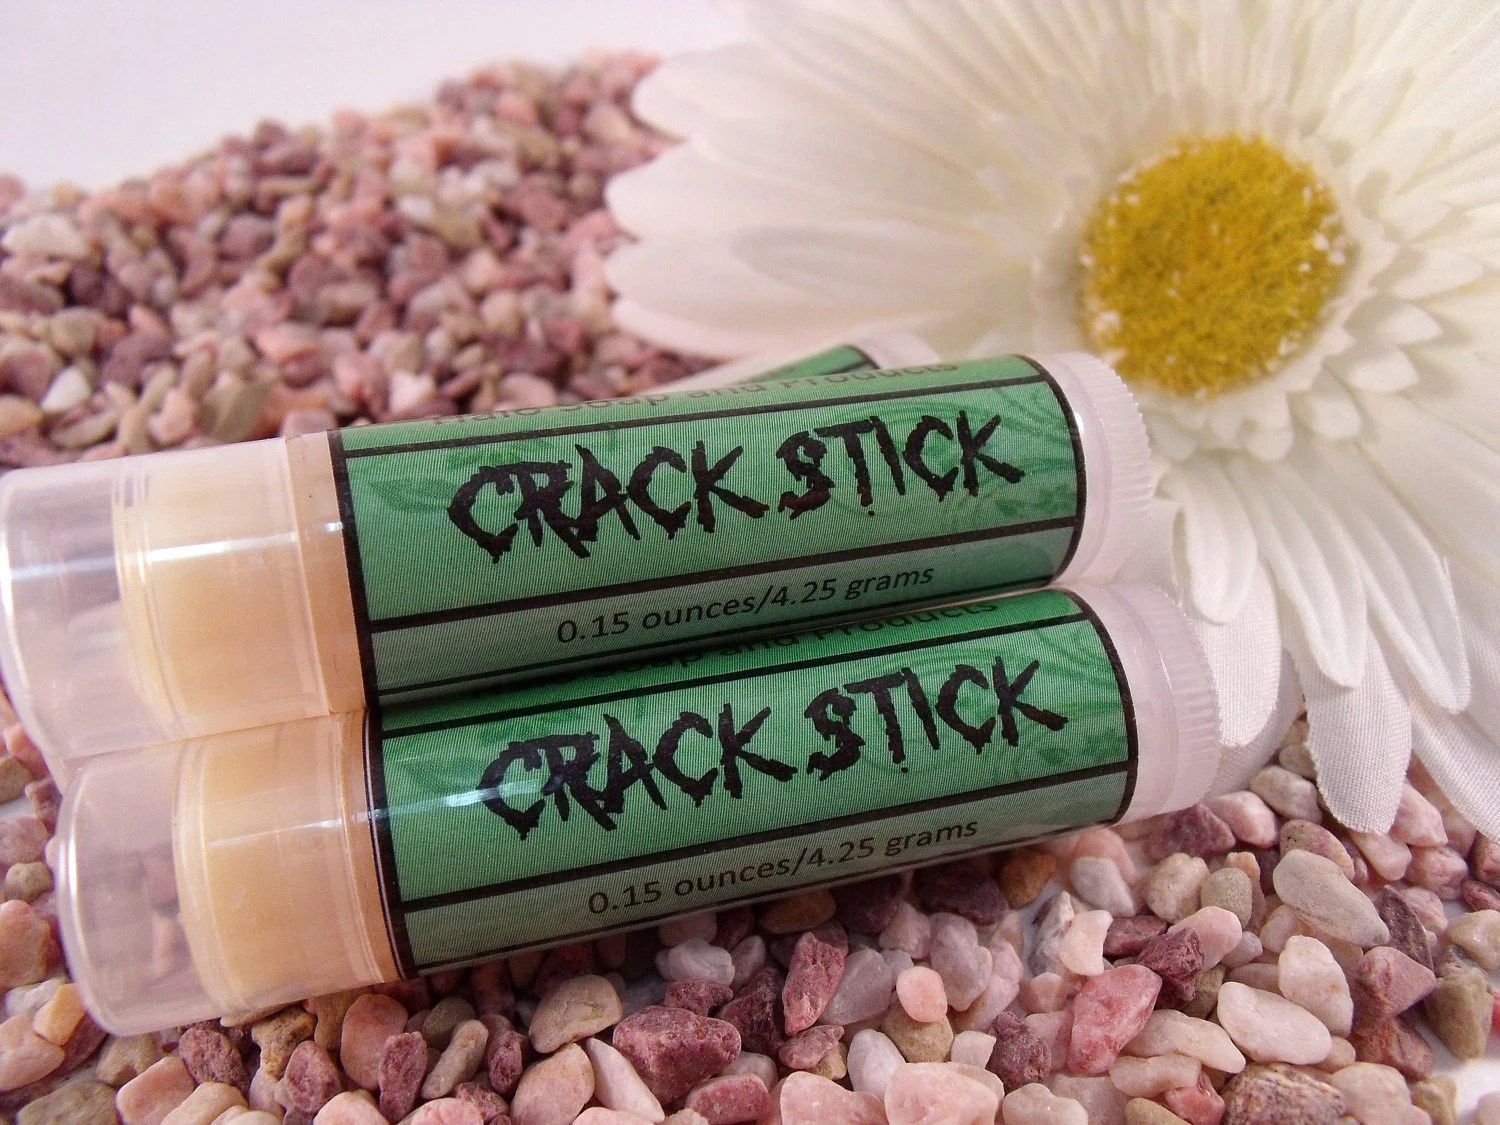 One Crack Stick Mentholated Lip Balm - Vegan - 100% Natural - HaloSoap